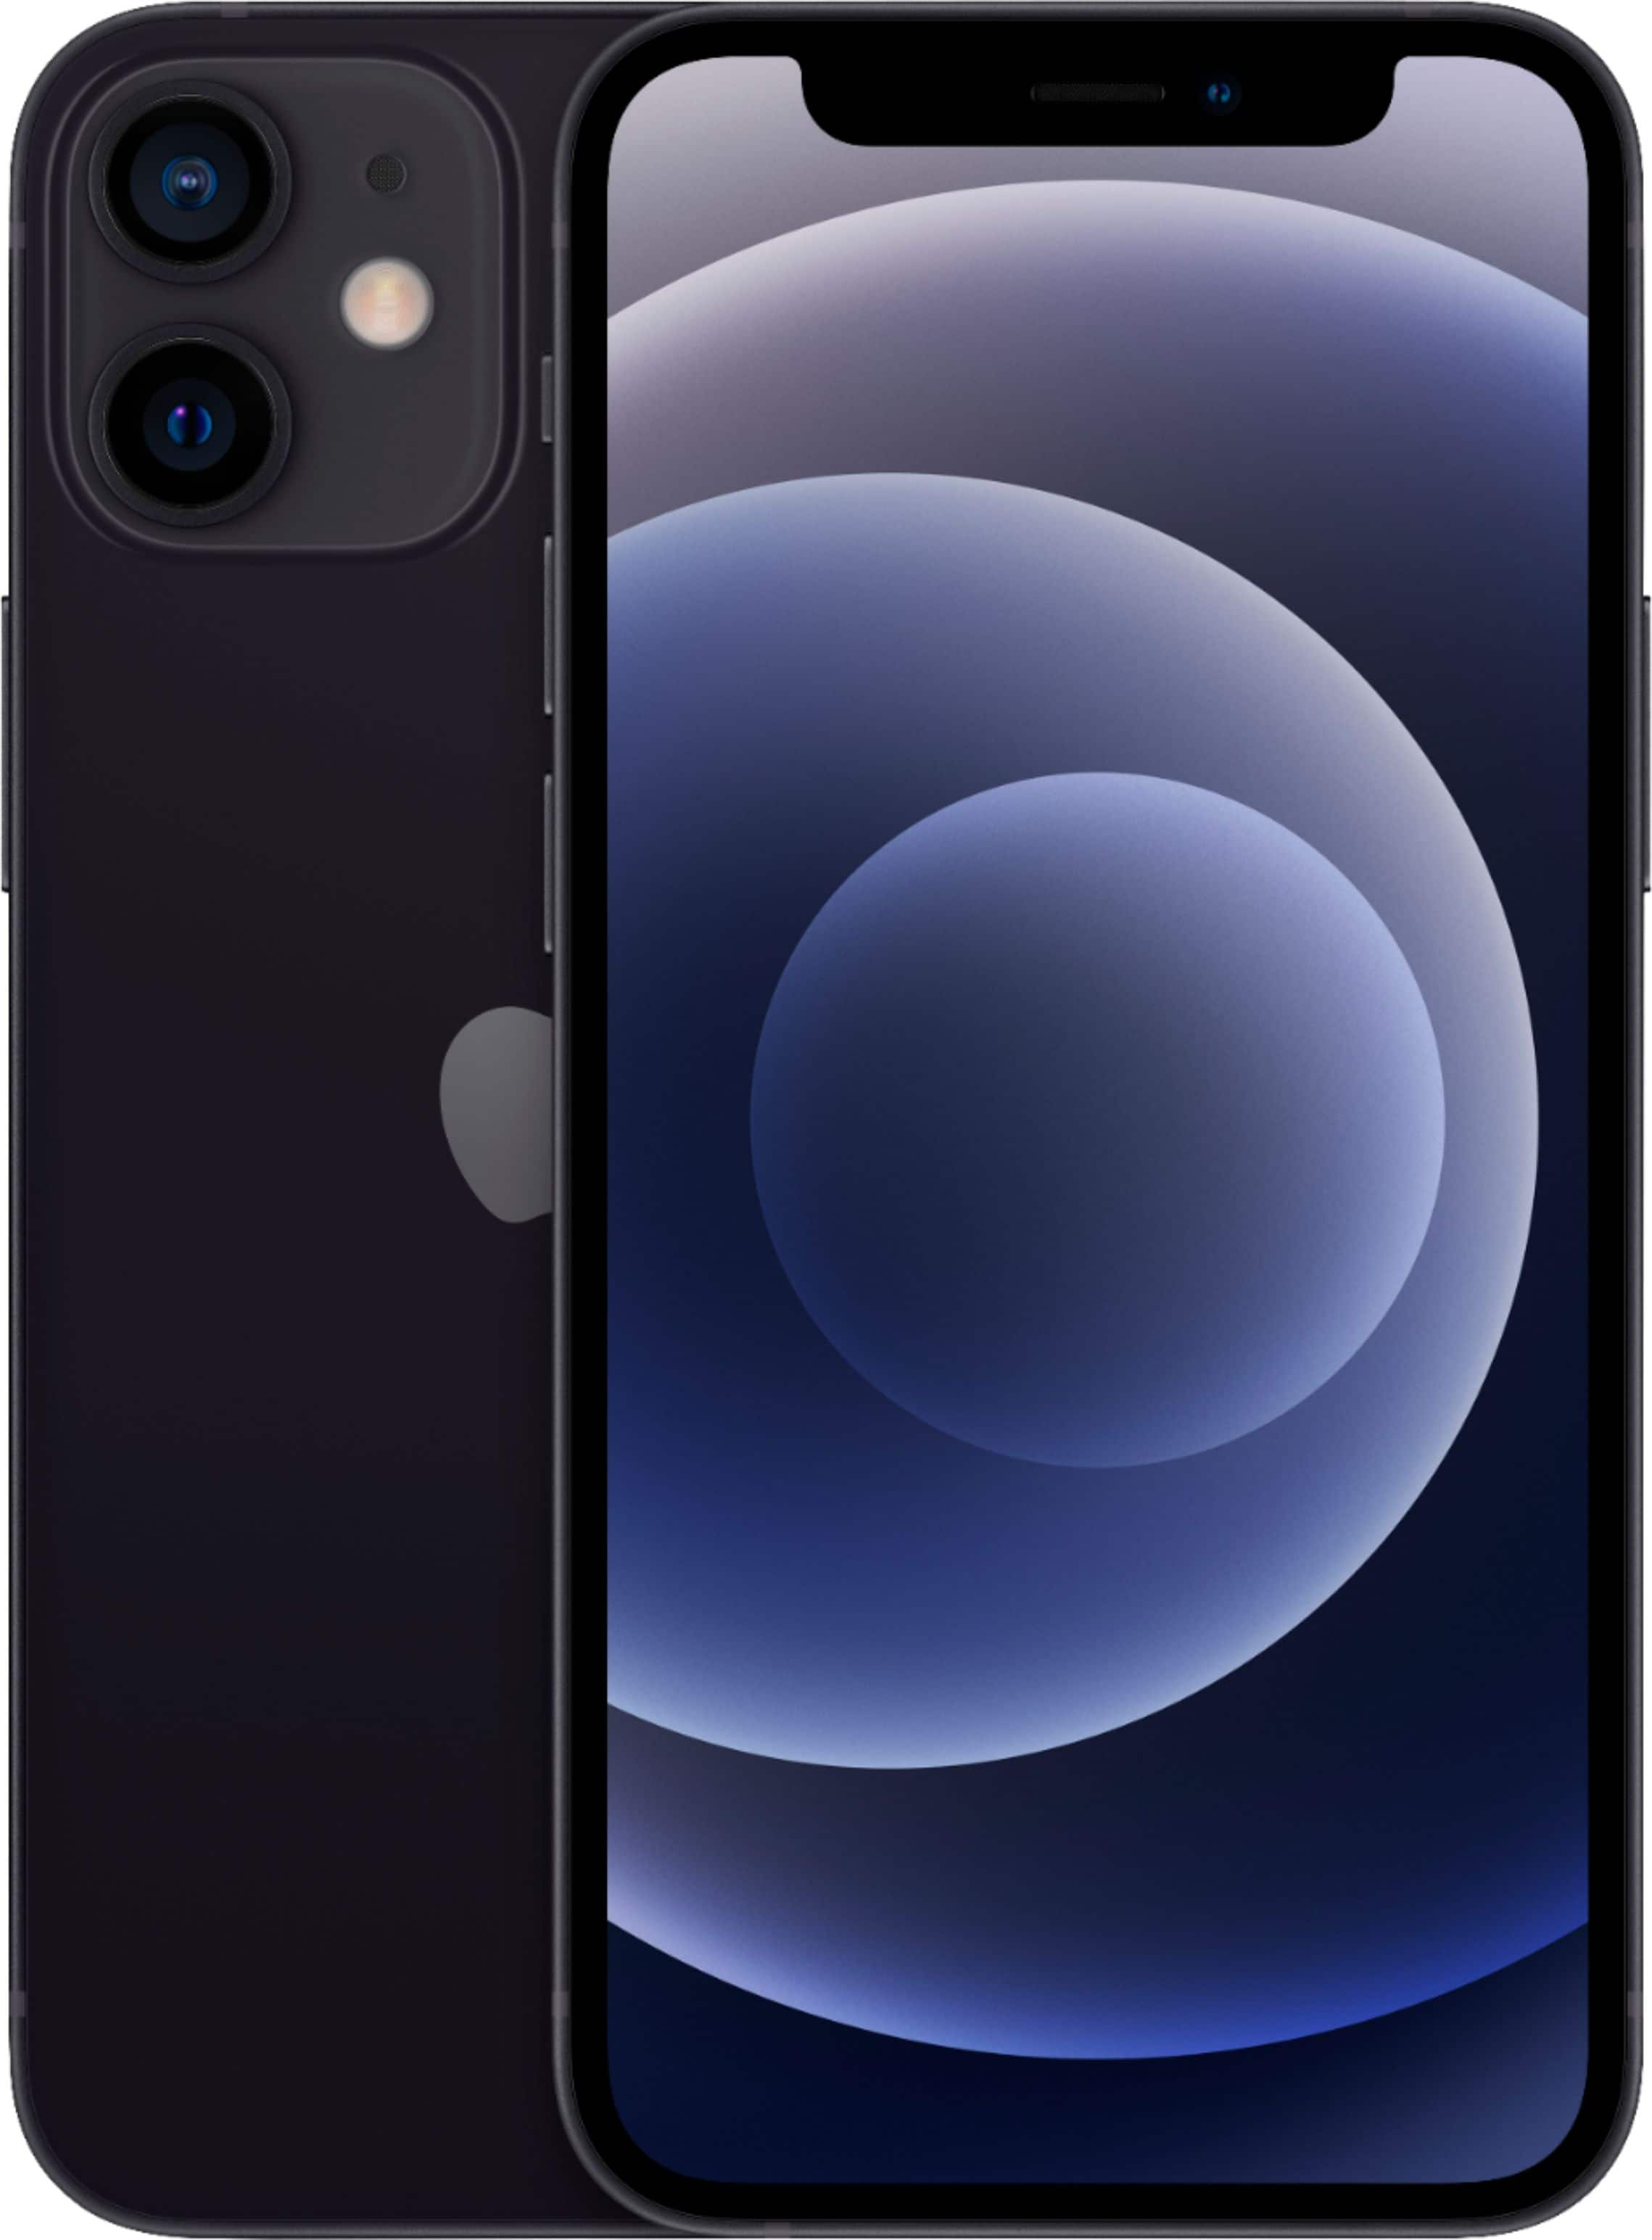 iPhone 12 mini $180 @ Metro by T-Mobile (requires 3 months service + trade in + port)